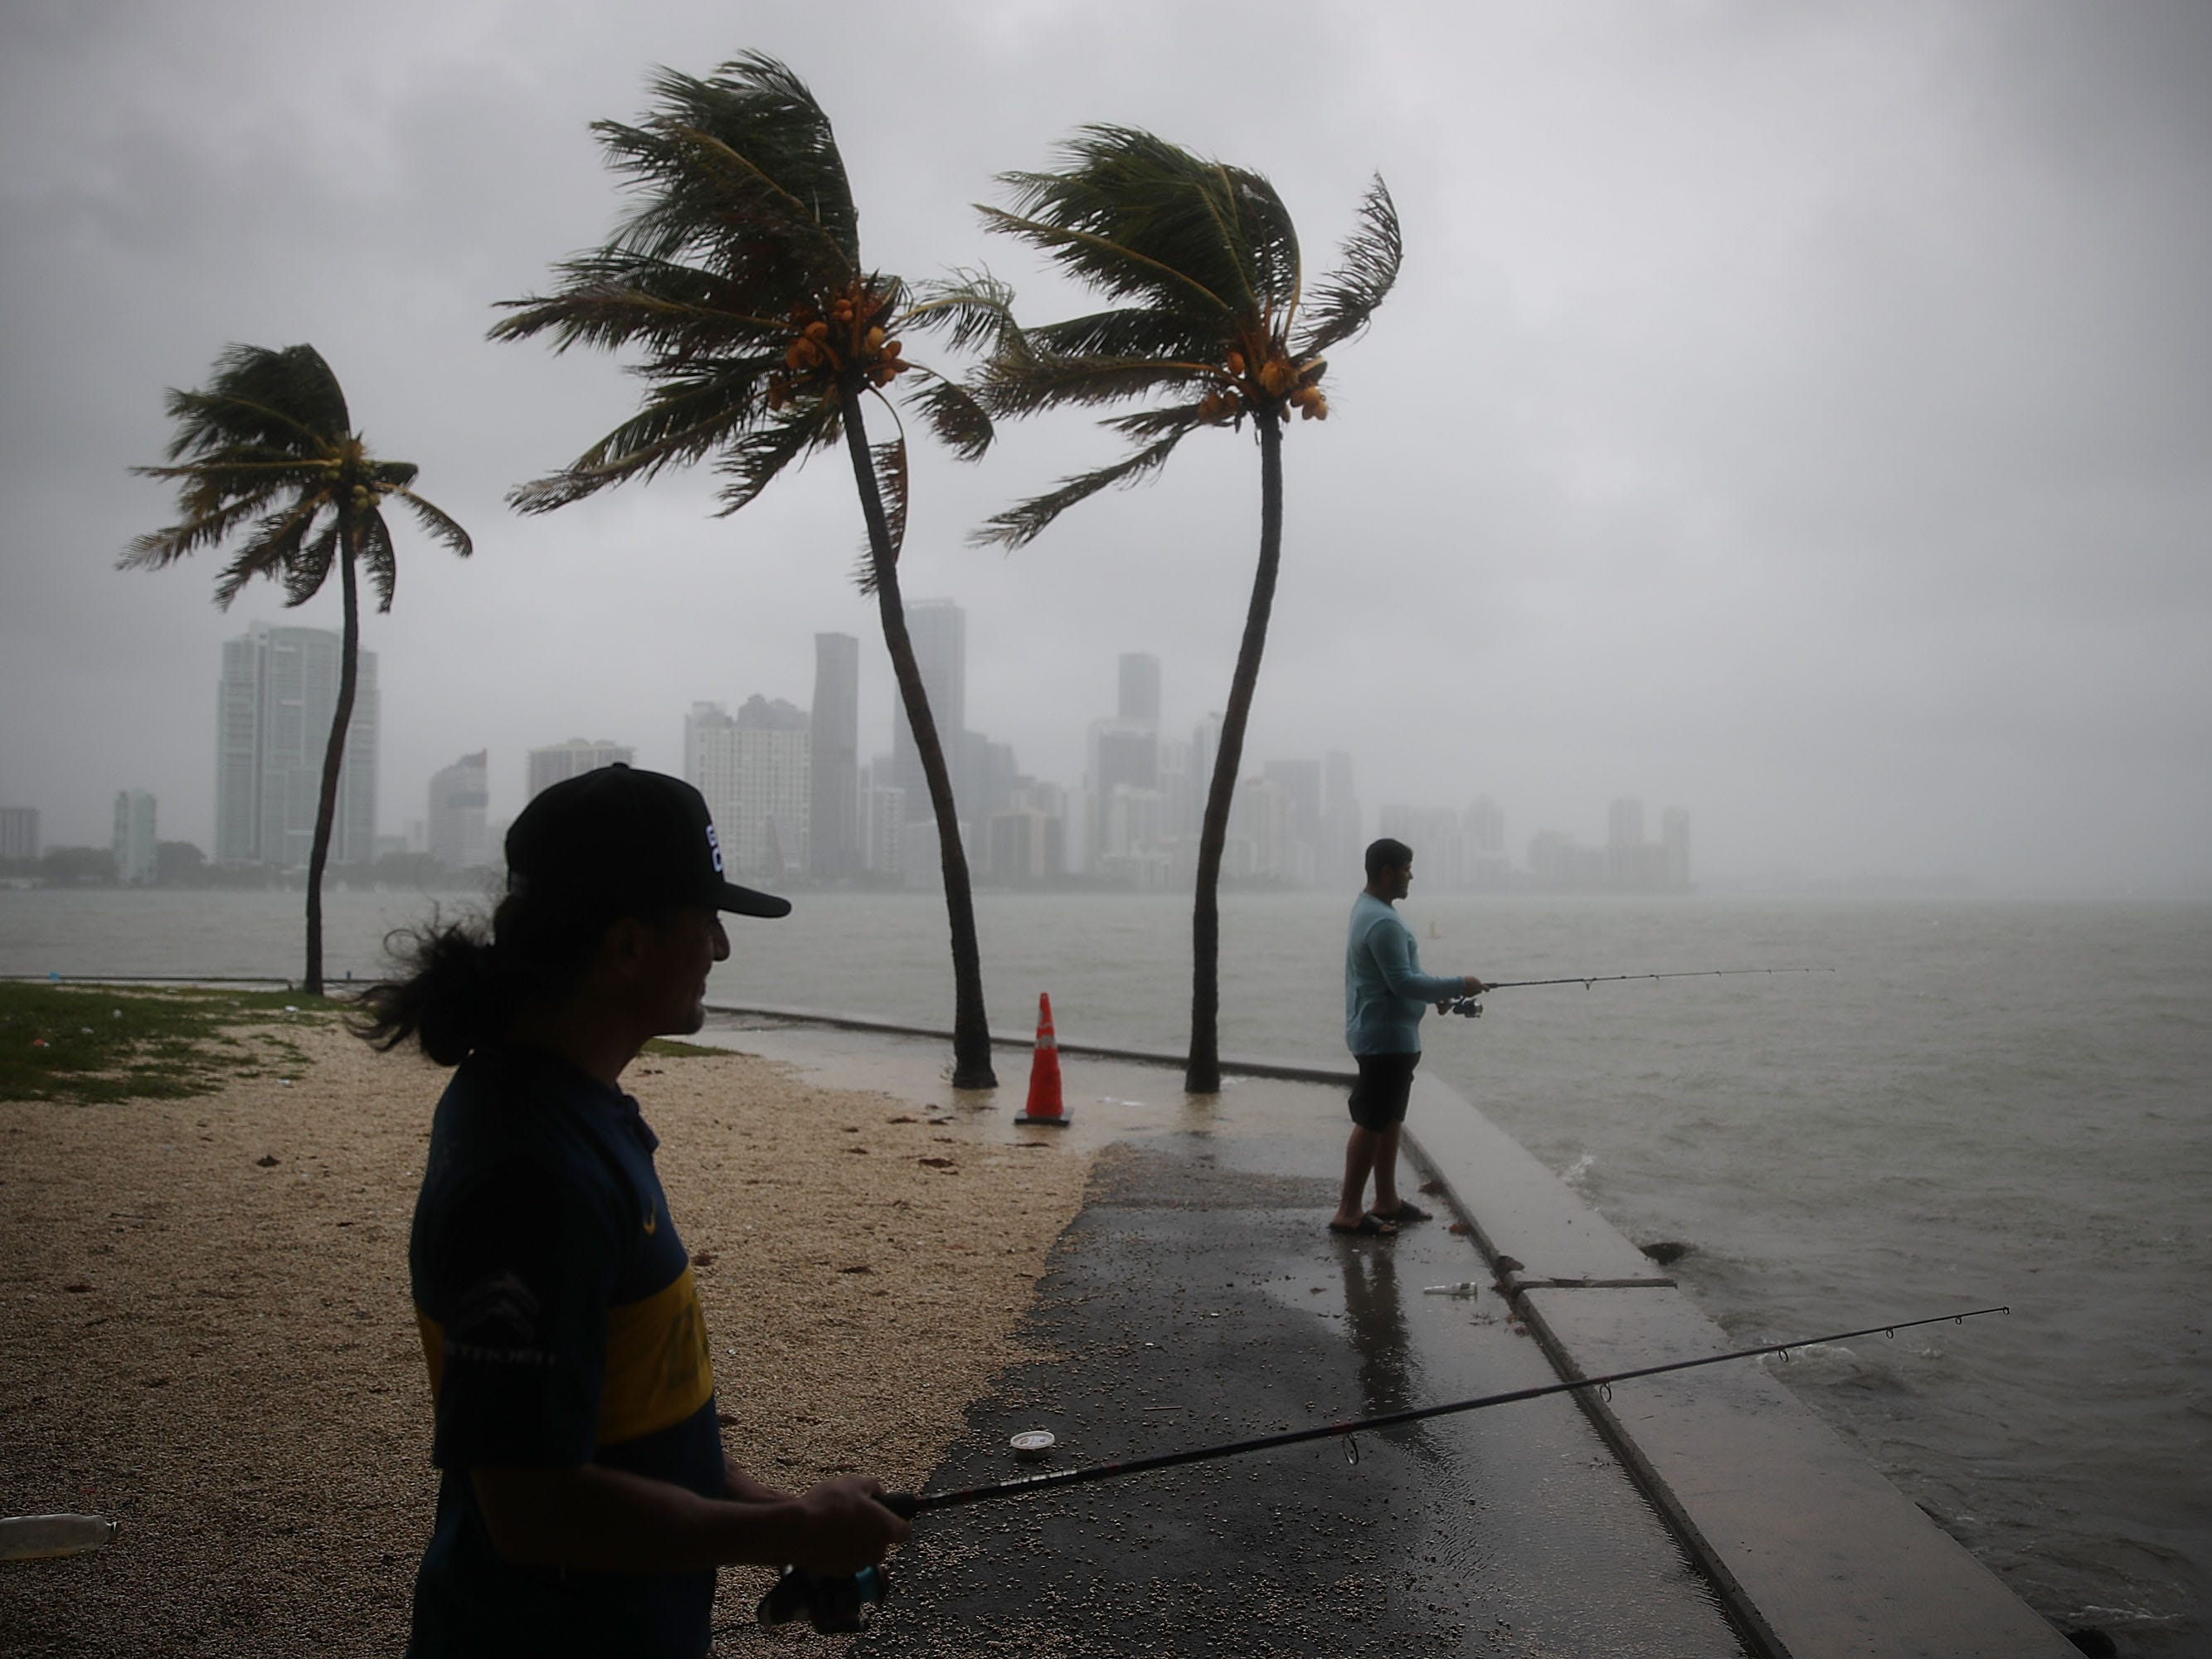 Walter Augier,  left, and Jhon M. fish as rain and wind are whipped up by Tropical Storm Gordon on Monday, September 3, 2018, in Miami, Florida.